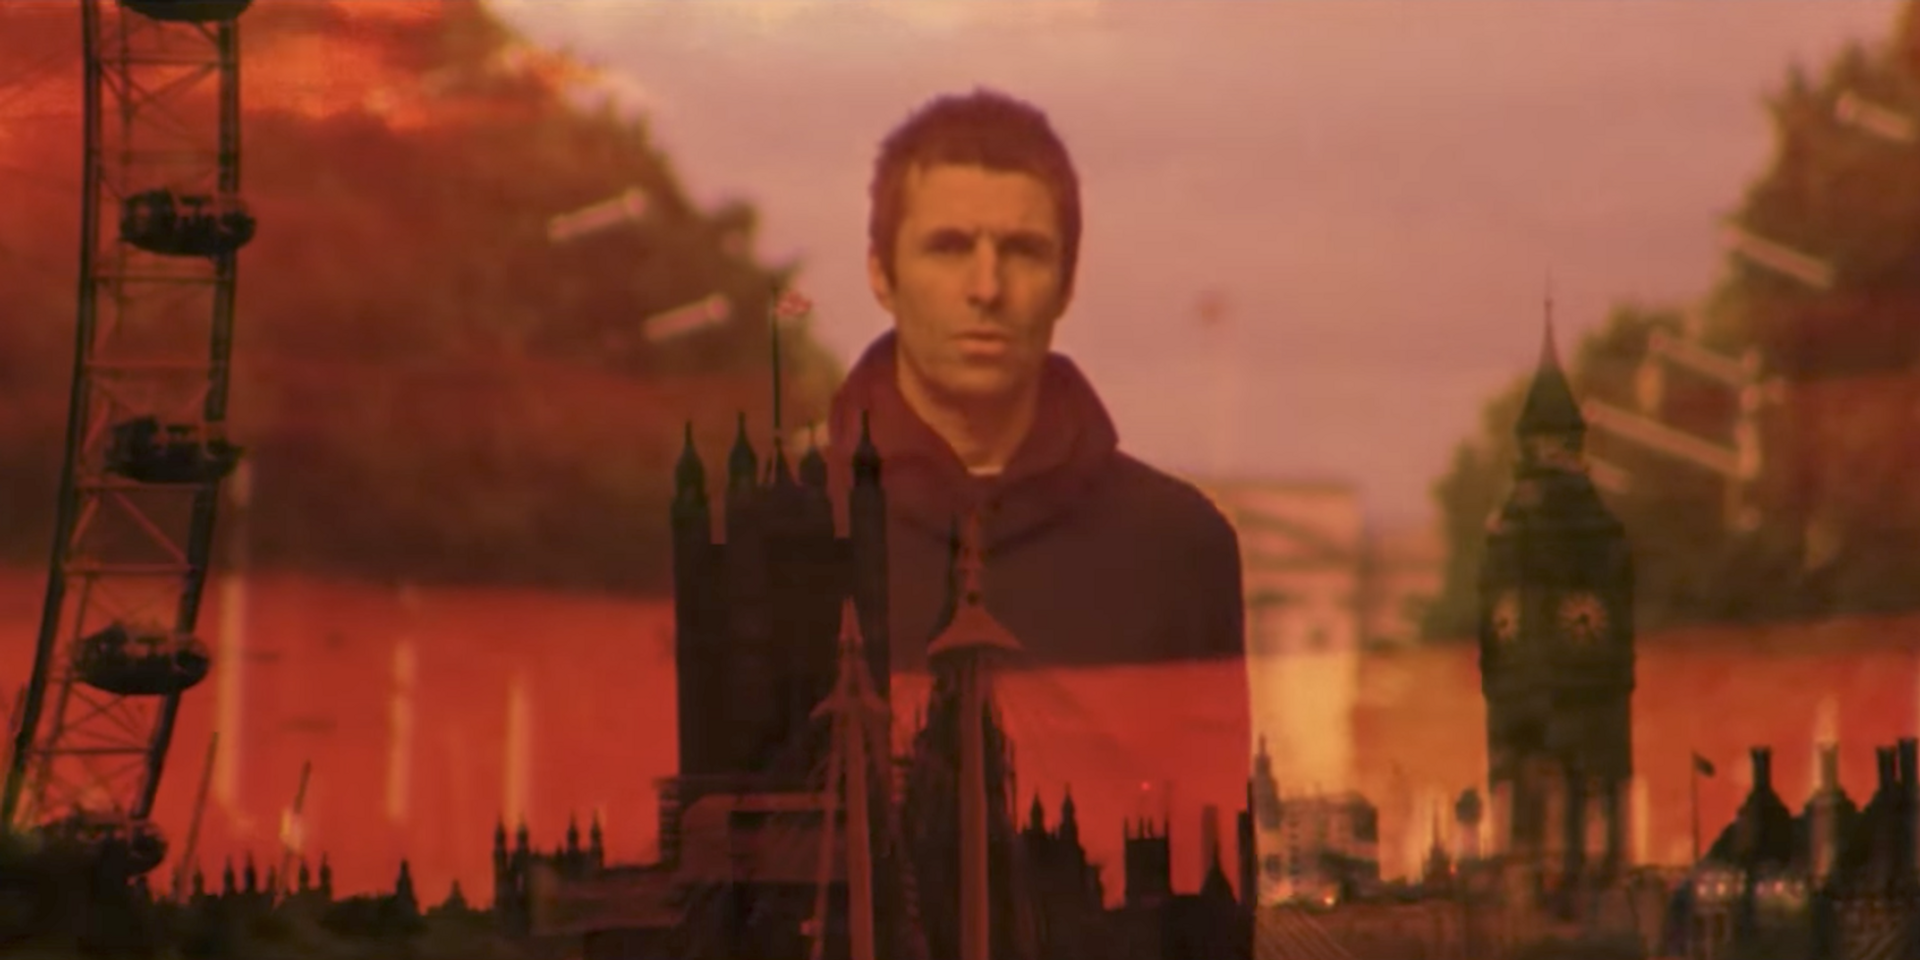 Liam Gallagher shares music video for 'Chinatown', tracklist for As You Were